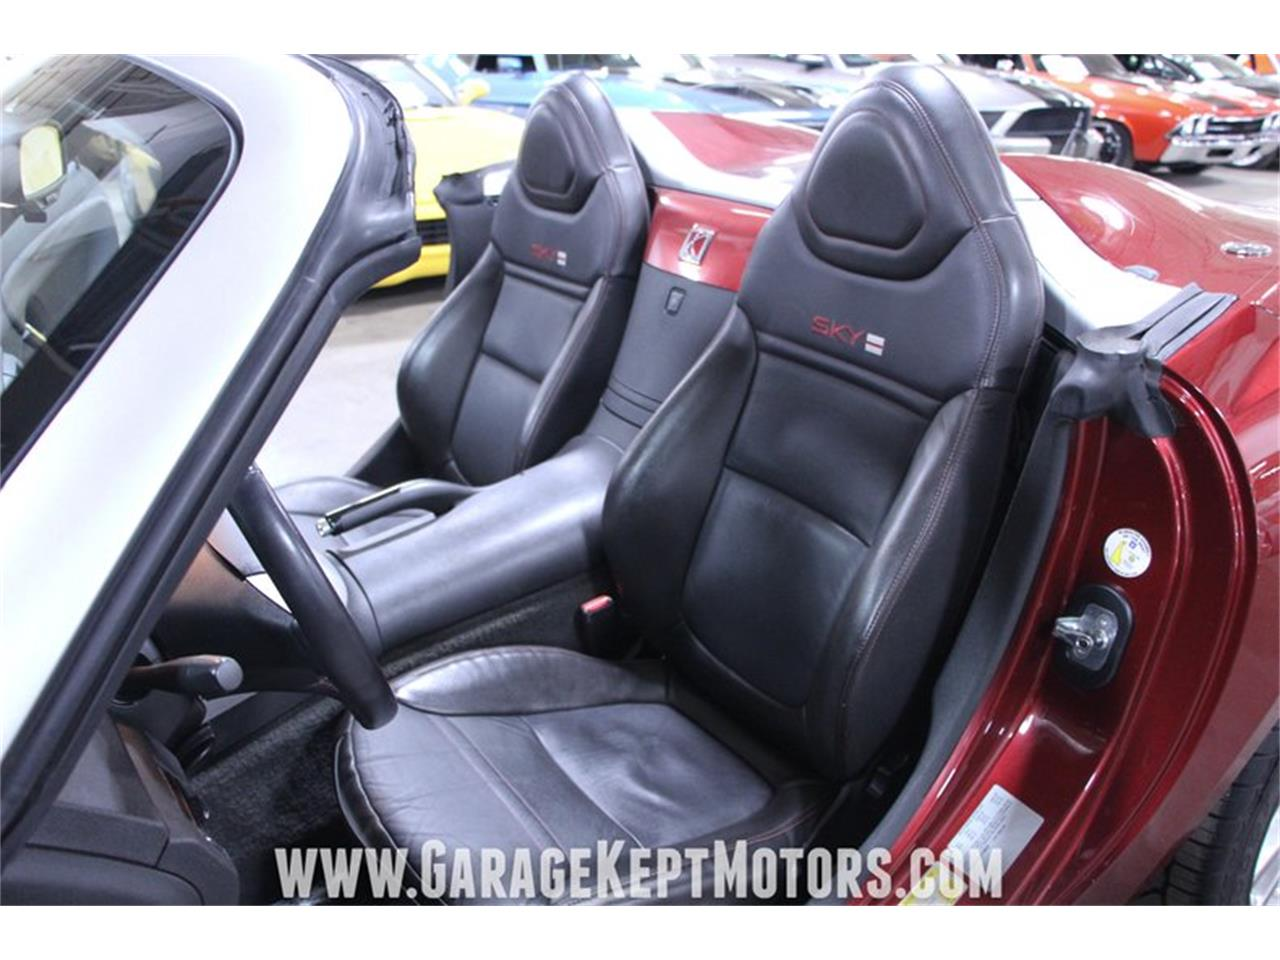 2009 Saturn Sky for sale in Grand Rapids, MI – photo 63